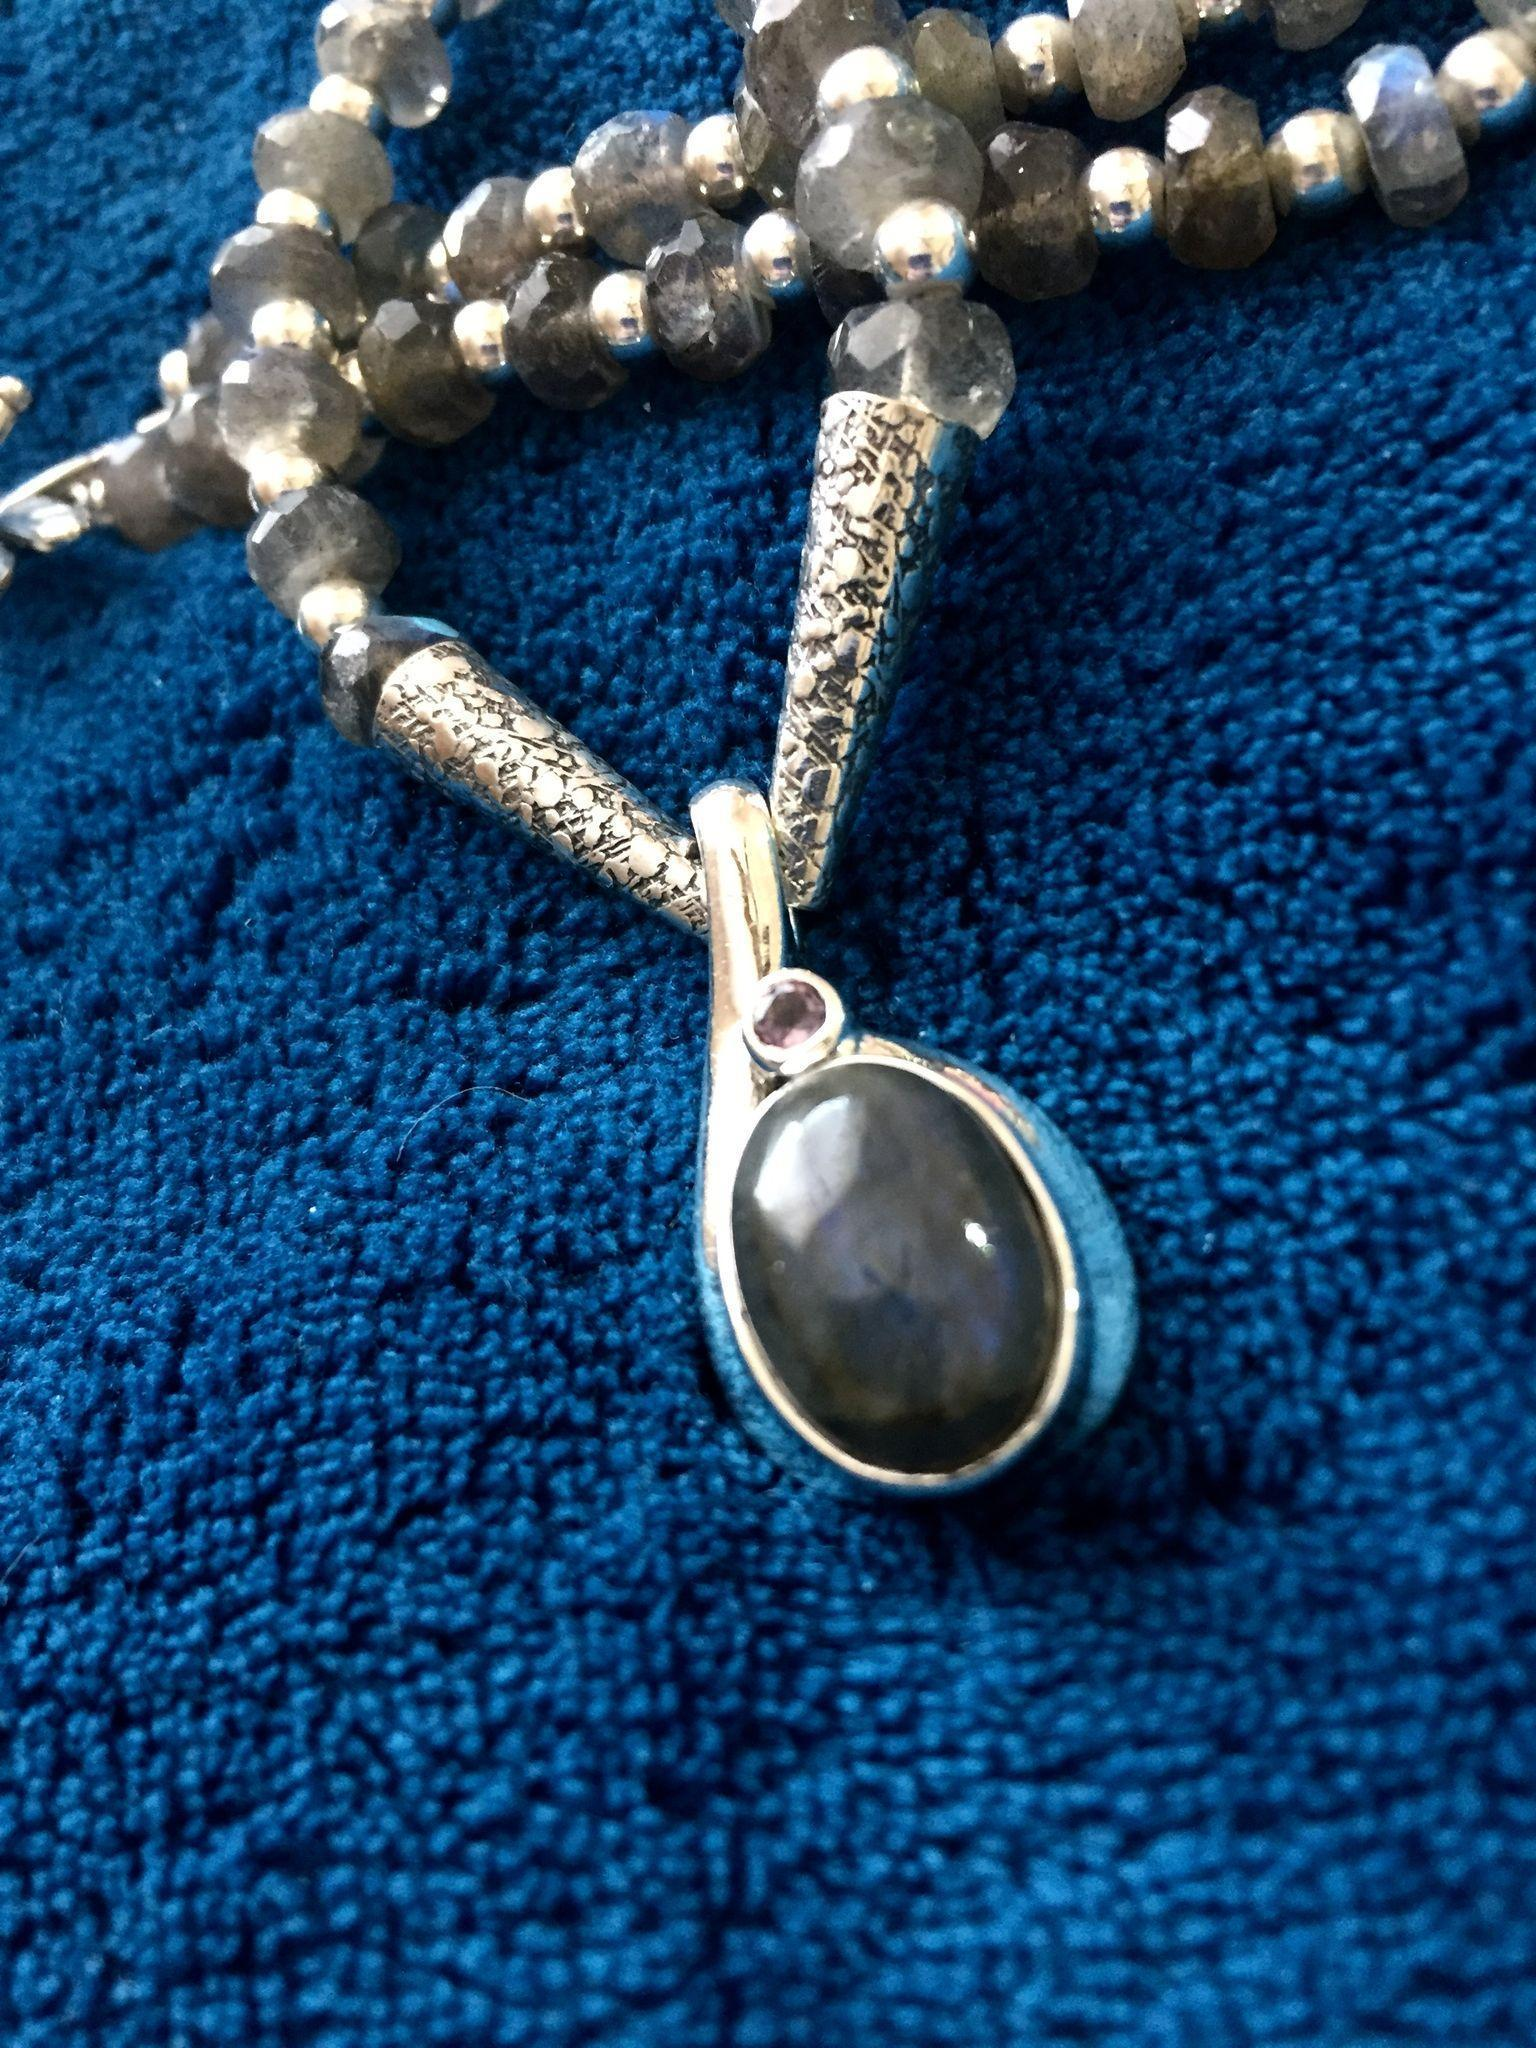 Labradorite and Sterling Silver Necklace, 19 Inches